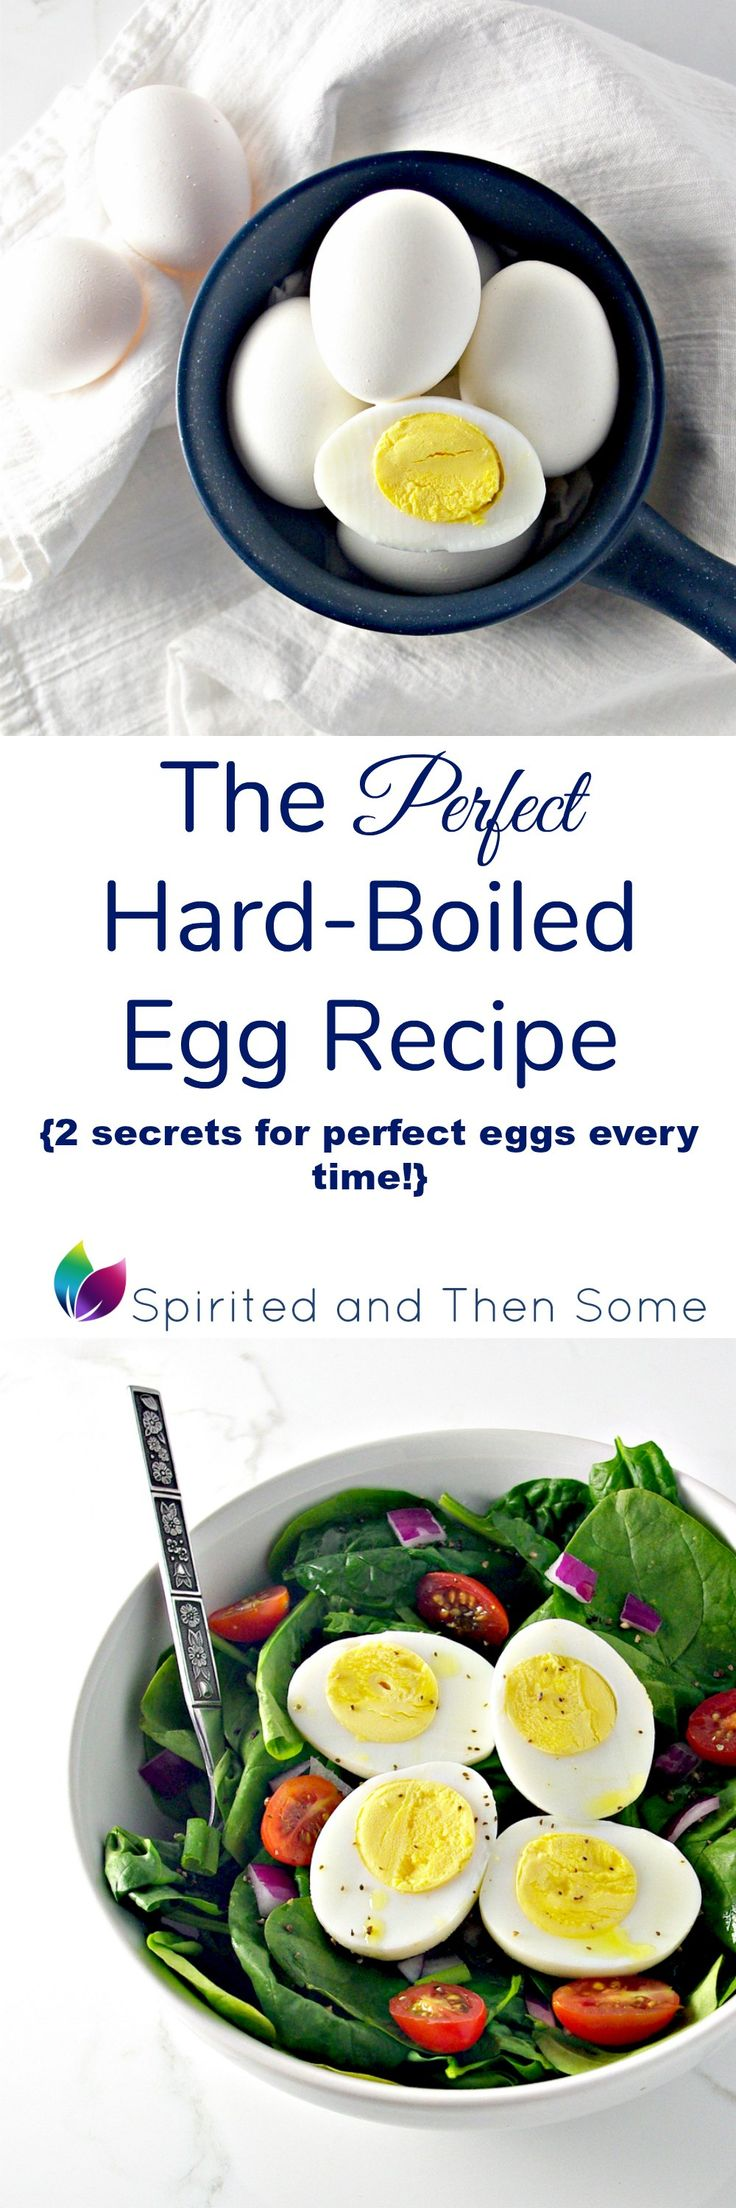 The Perfect Hard-Boiled Egg Recipe comes with two secrets for perfect eggs every time!